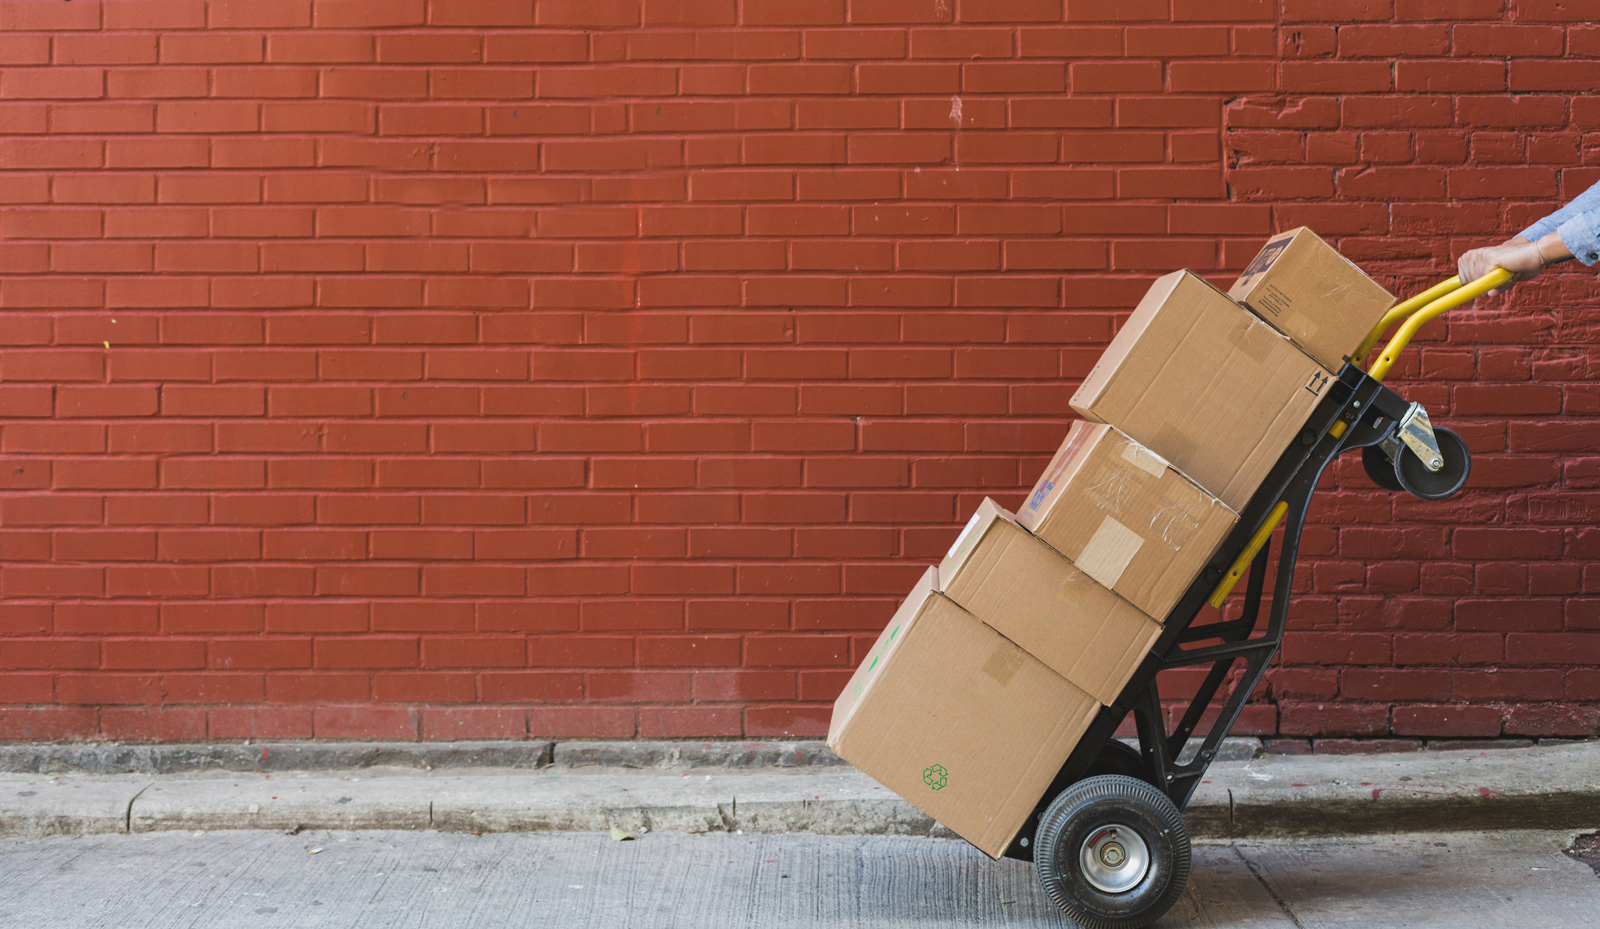 Red brick wall with a stack of moving boxes on a hand cart being pulled.